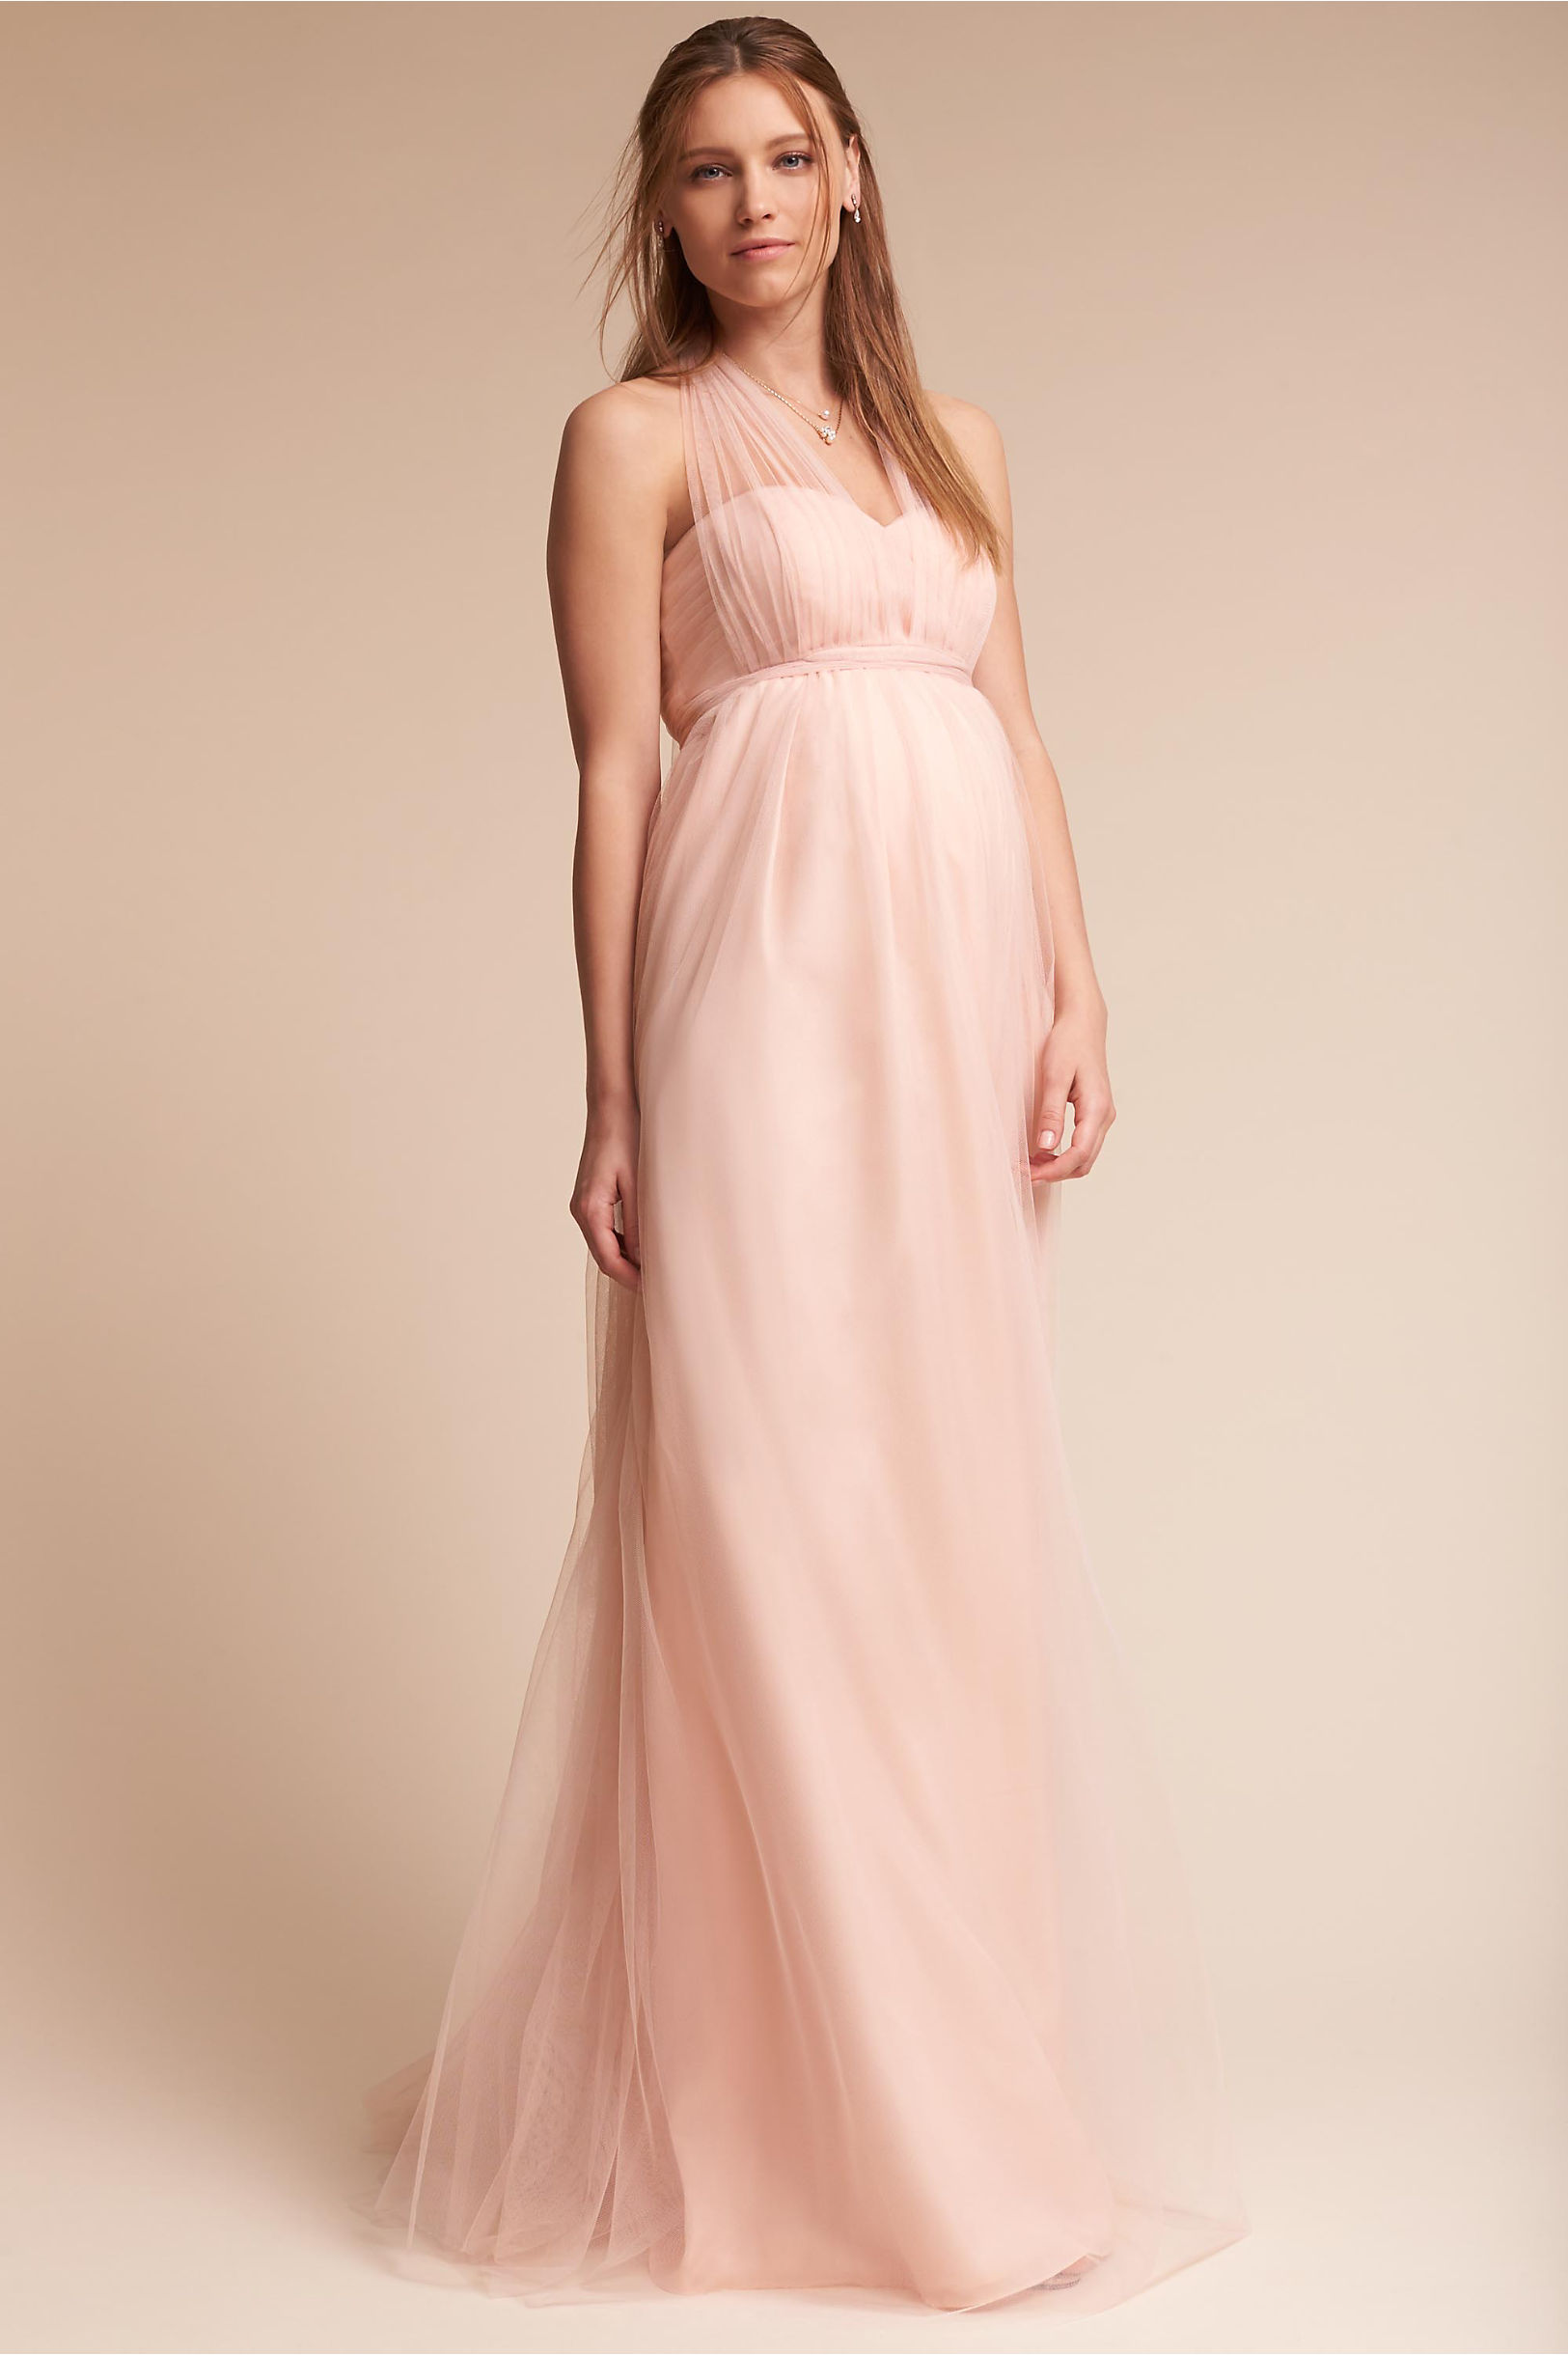 Serafina Maternity Dress Blush in Bridal Party | BHLDN